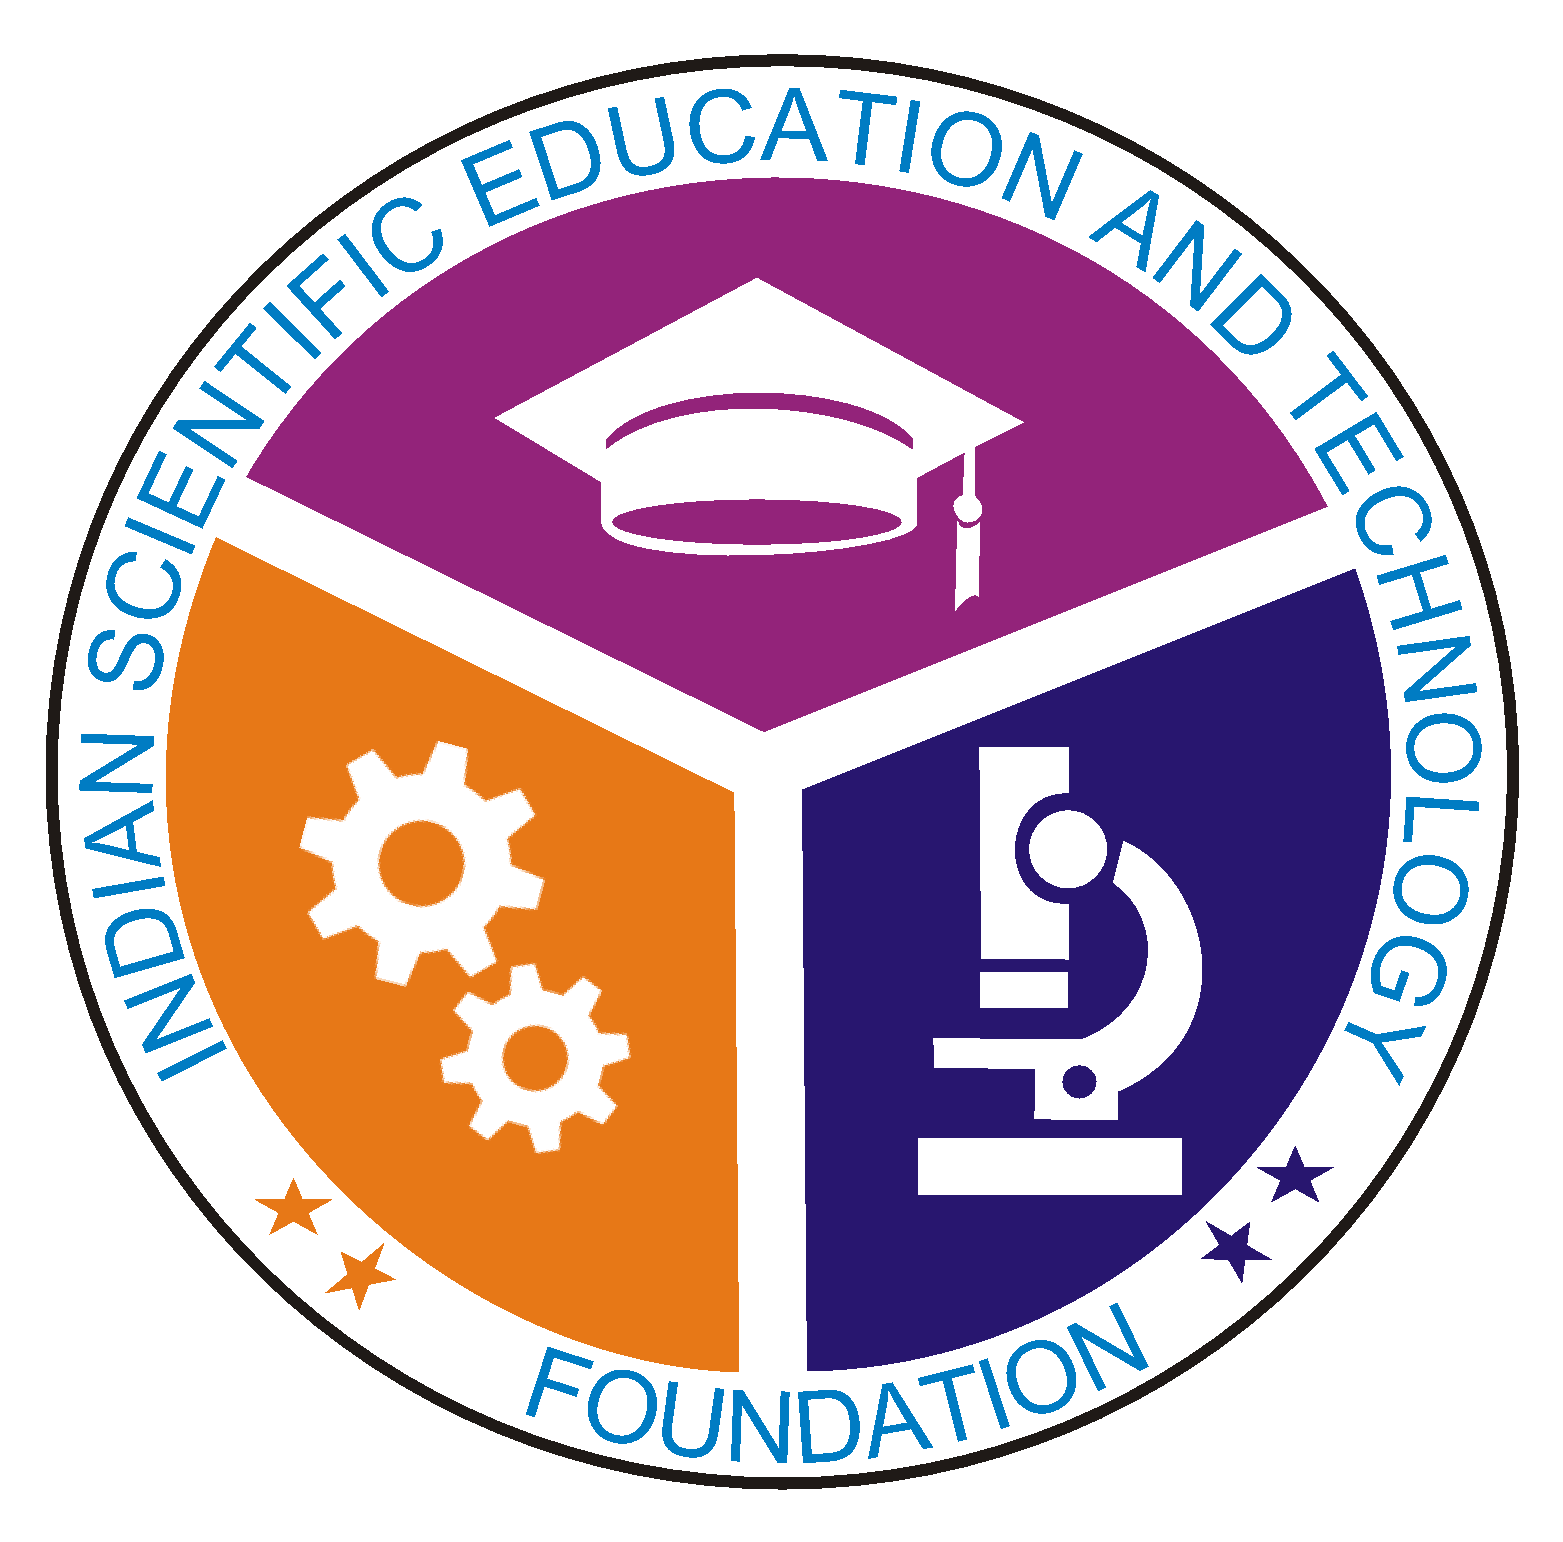 Indian Scientific Education & Technology Foundation (ISET Foundation)